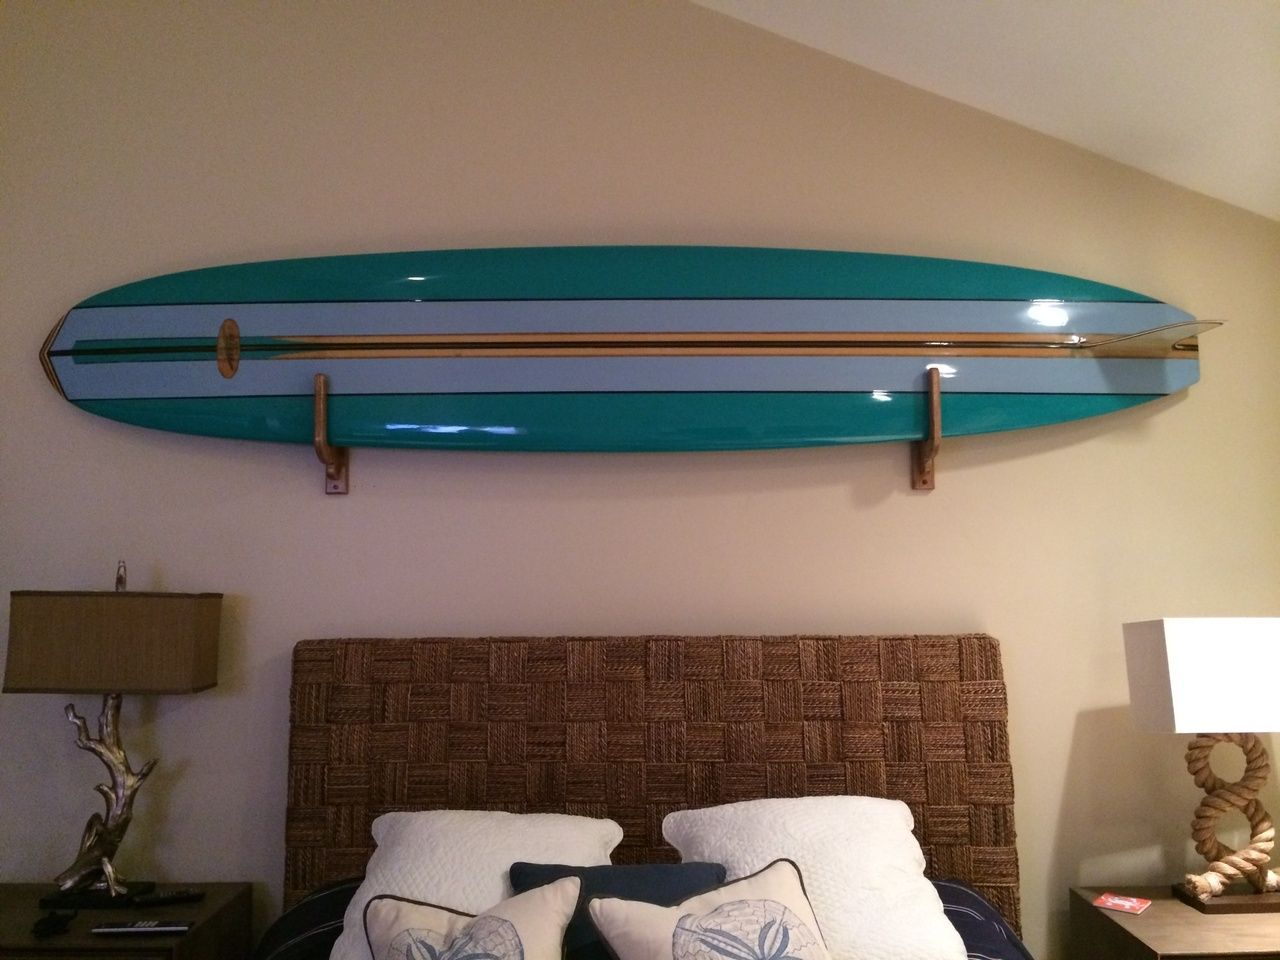 Surfboard Wall Art 9 best surfboard wall mount images on pinterest | wall mount